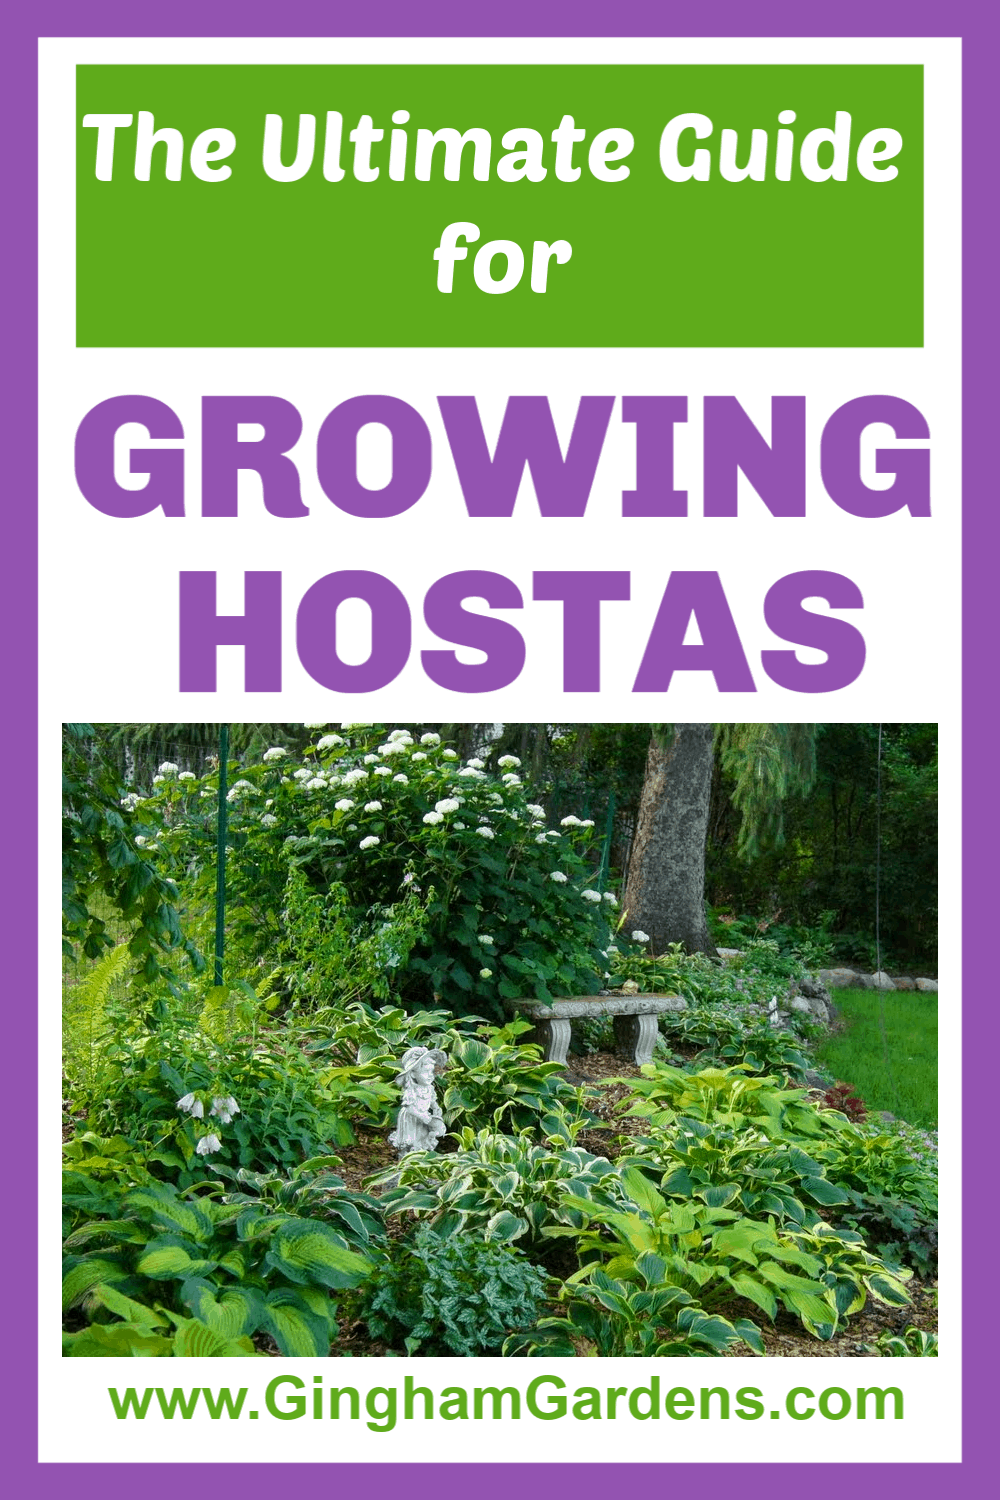 Image of hosta garden with text overlay - The Ultimate Guide for Growing Hostas